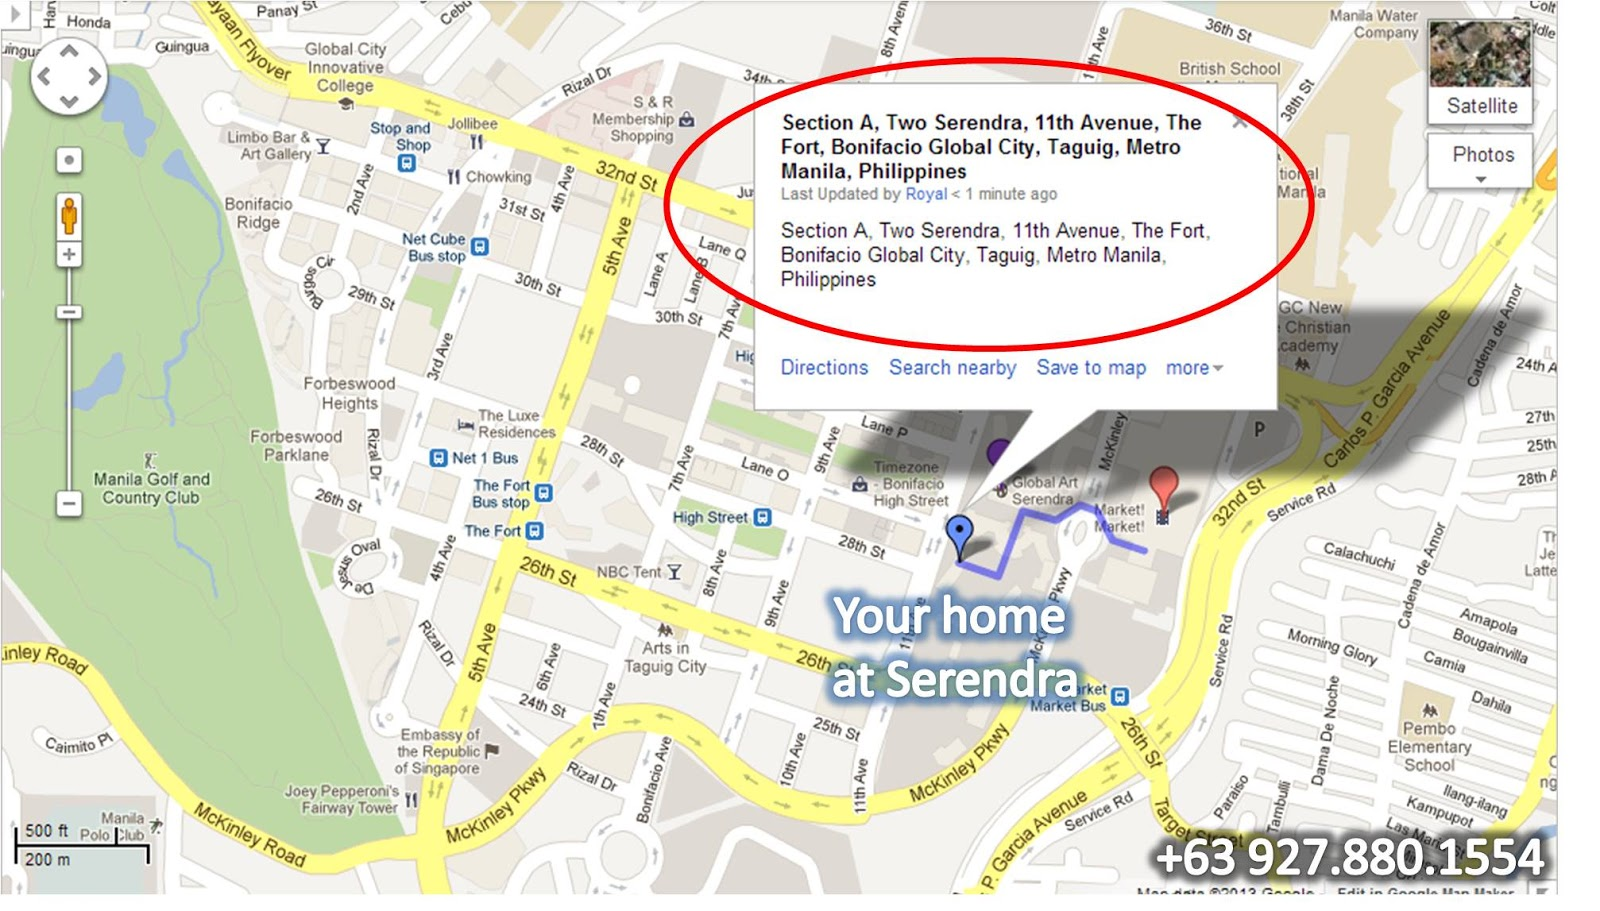 3 Bedroom Section 8 Houses Rent The Fort Condo For Rent Global City Serendra The Fort